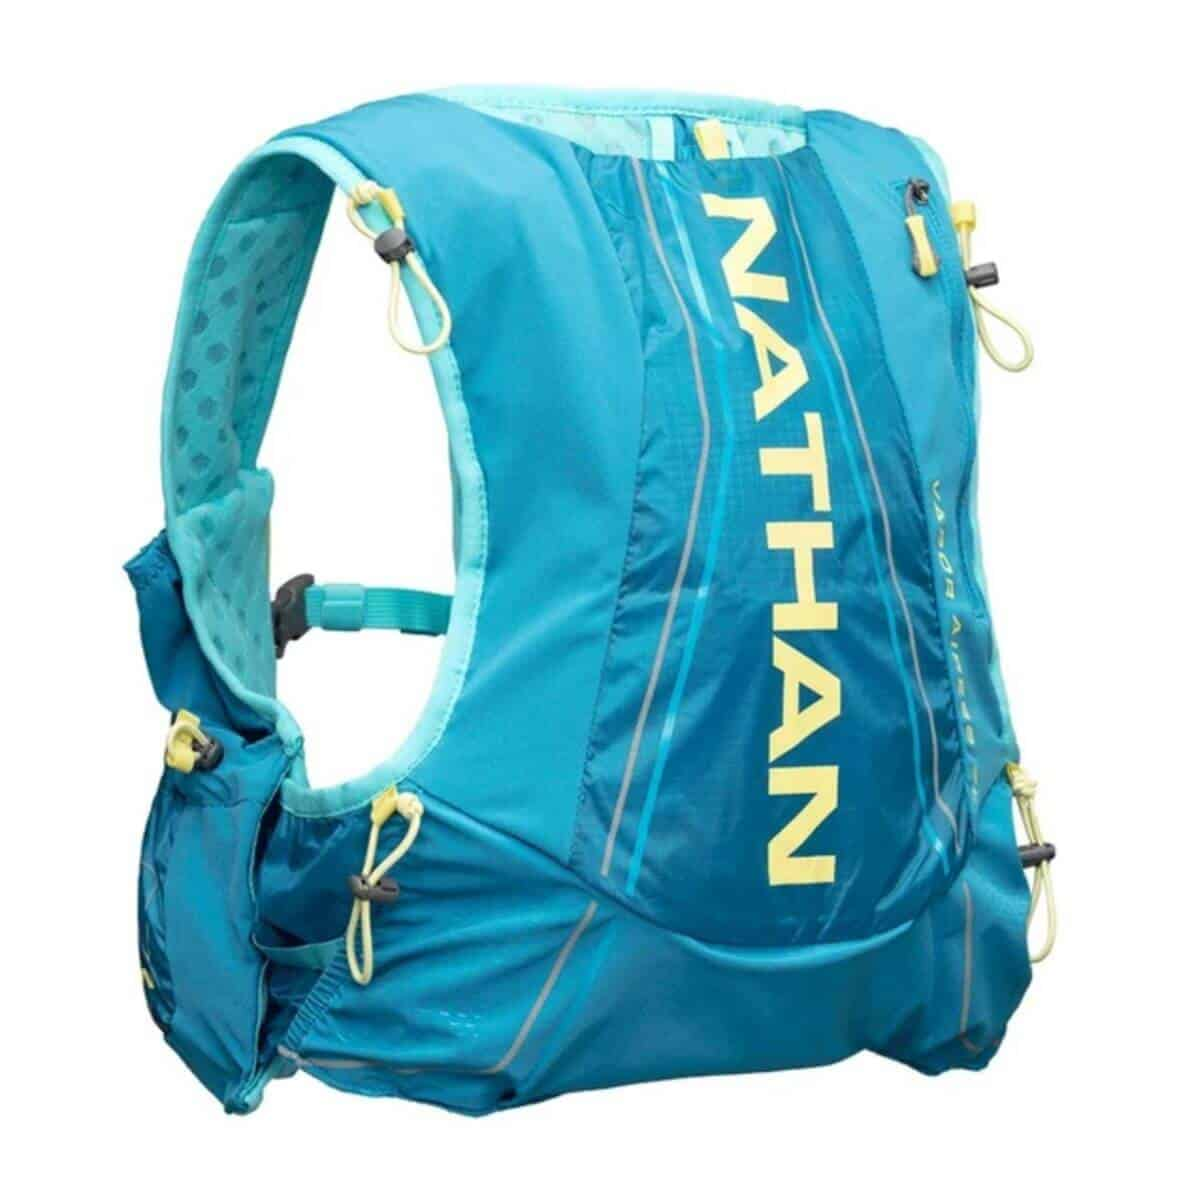 Blue and yellow hydration pack.